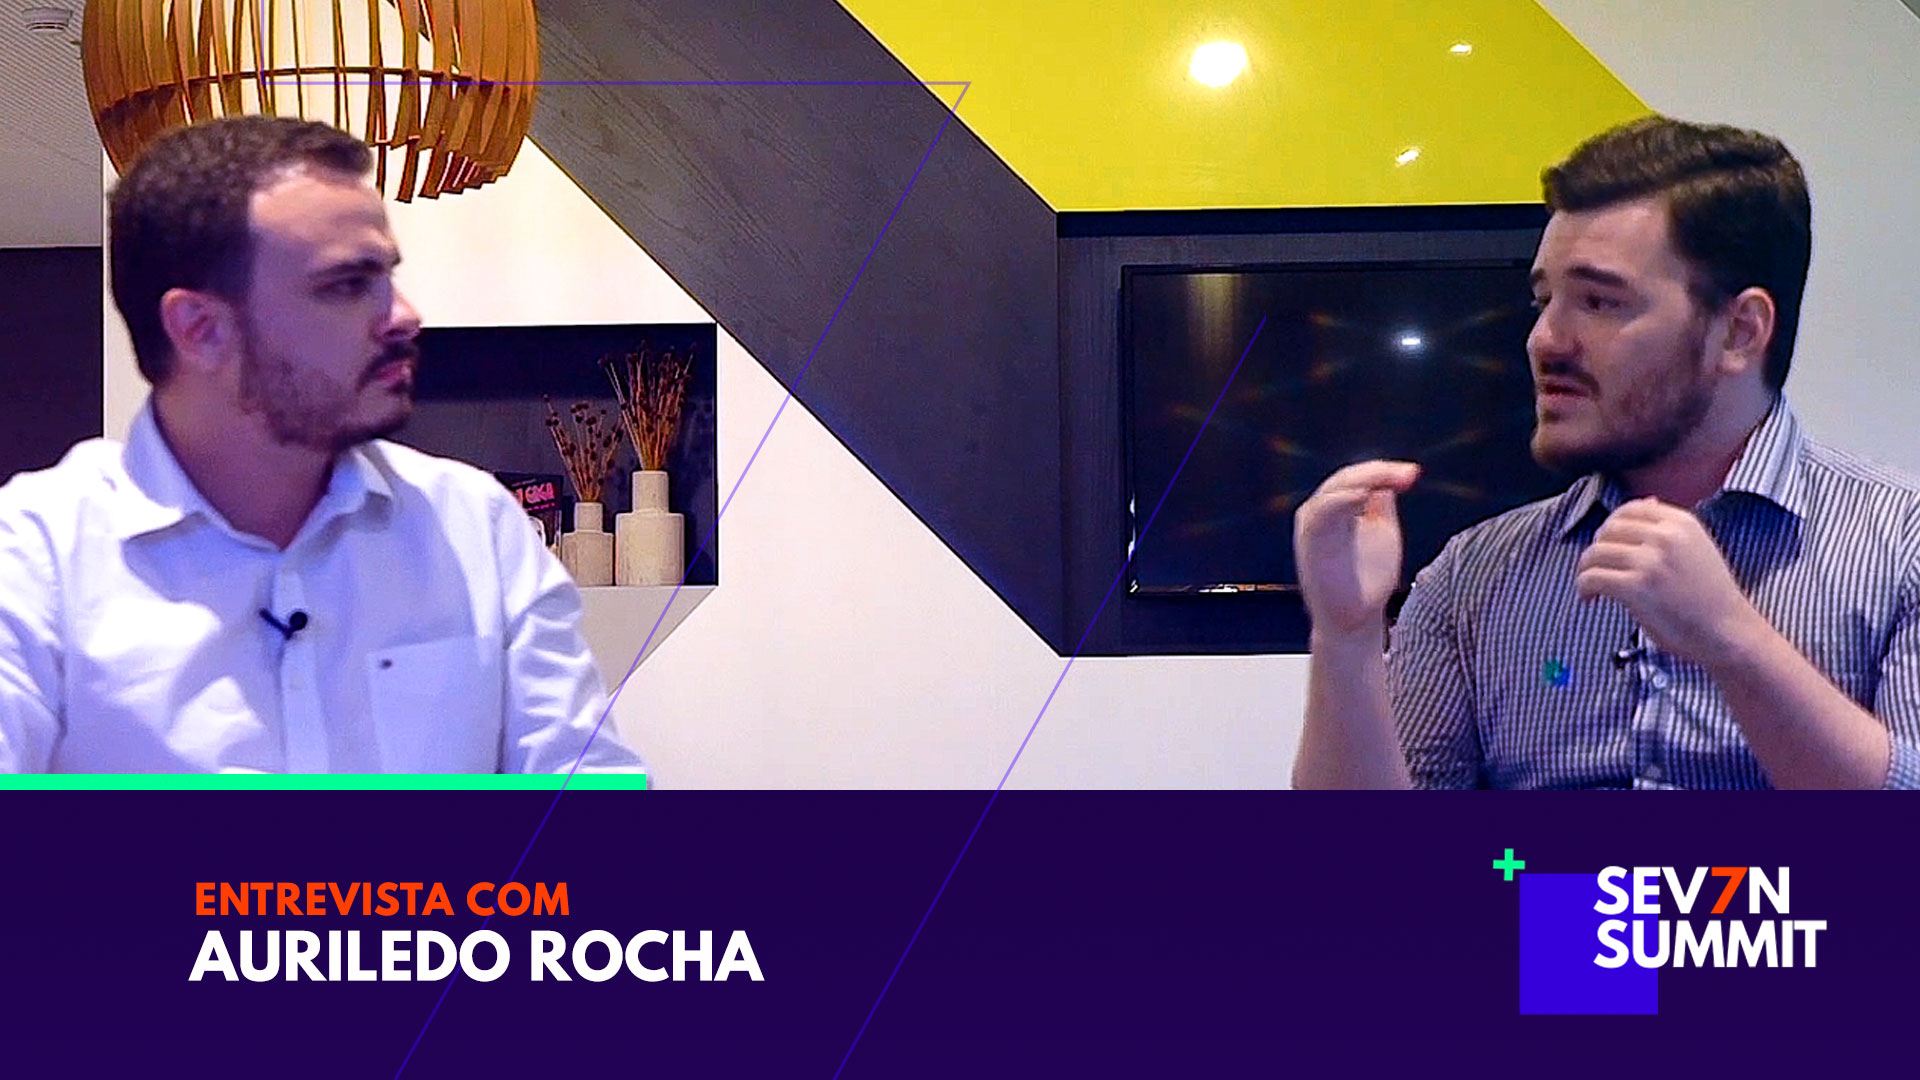 7 em 7 com Auriledo Rocha: O Profissional do Futuro no Marketing Digital